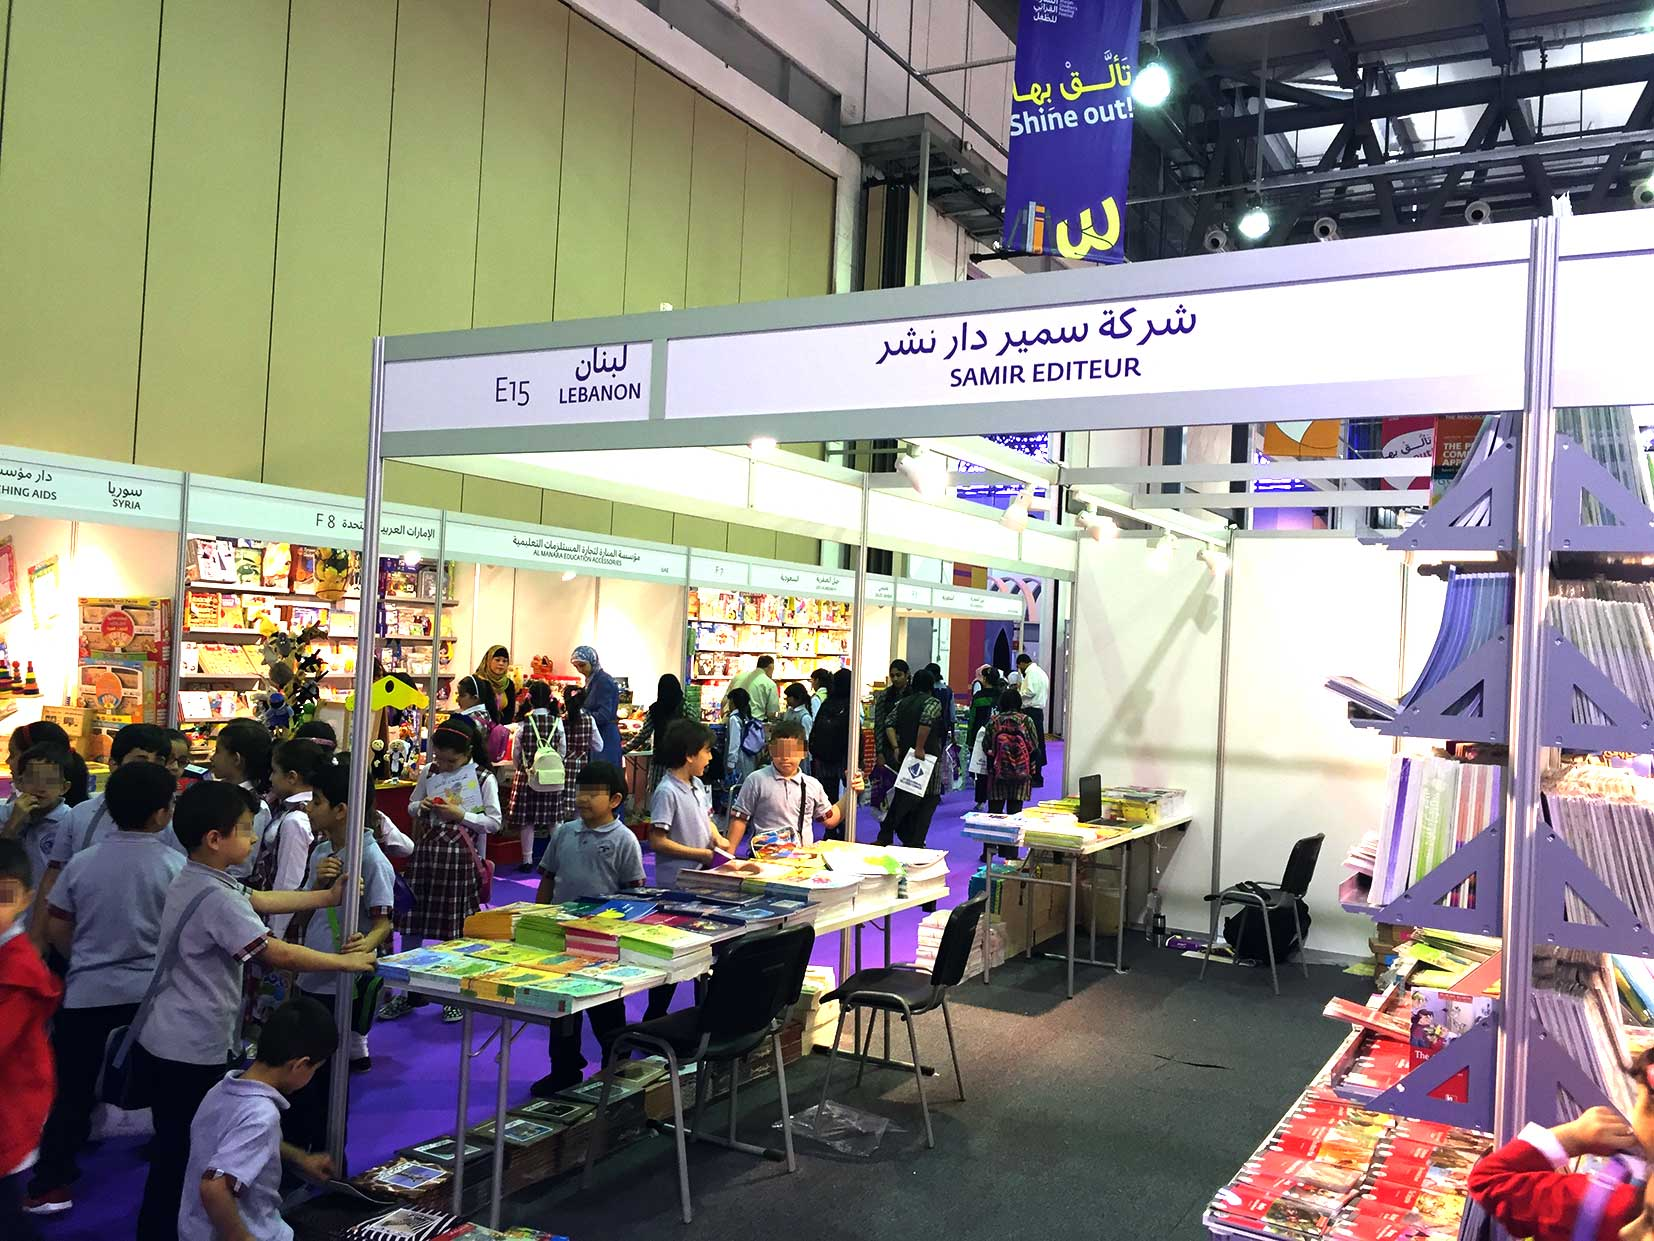 Samir Éditeur - Sharjah Children's Reading Festival 2016